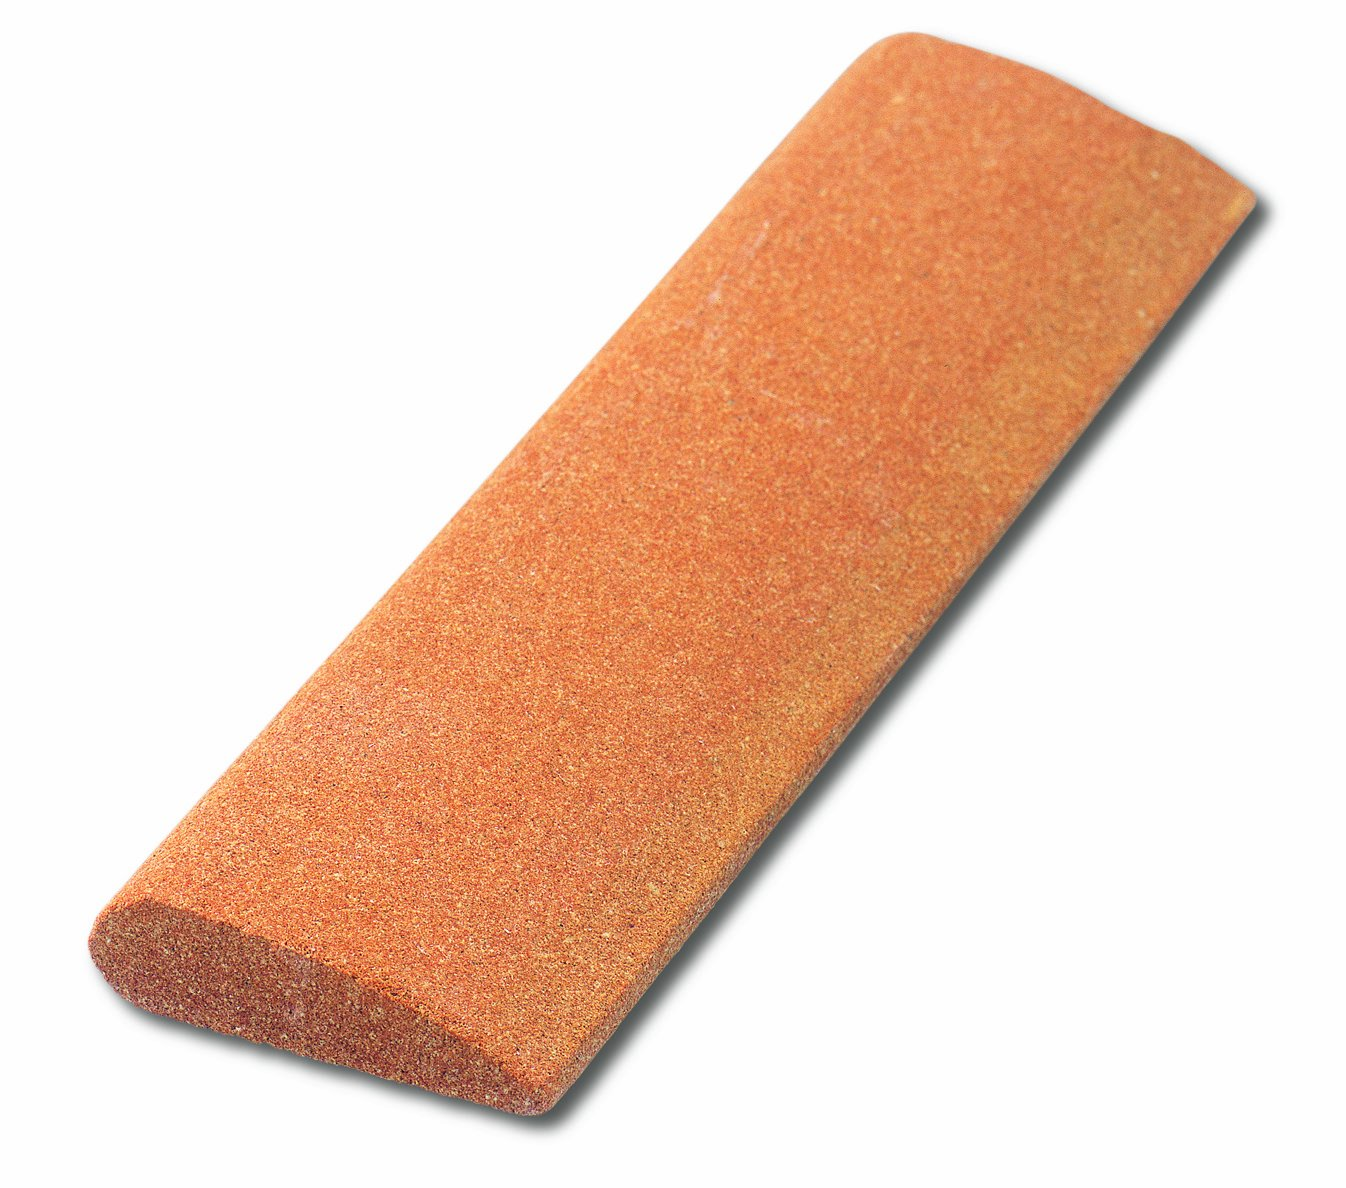 ARS, AC-SS240, Sharpening Stone for Pruning Tools by ARS